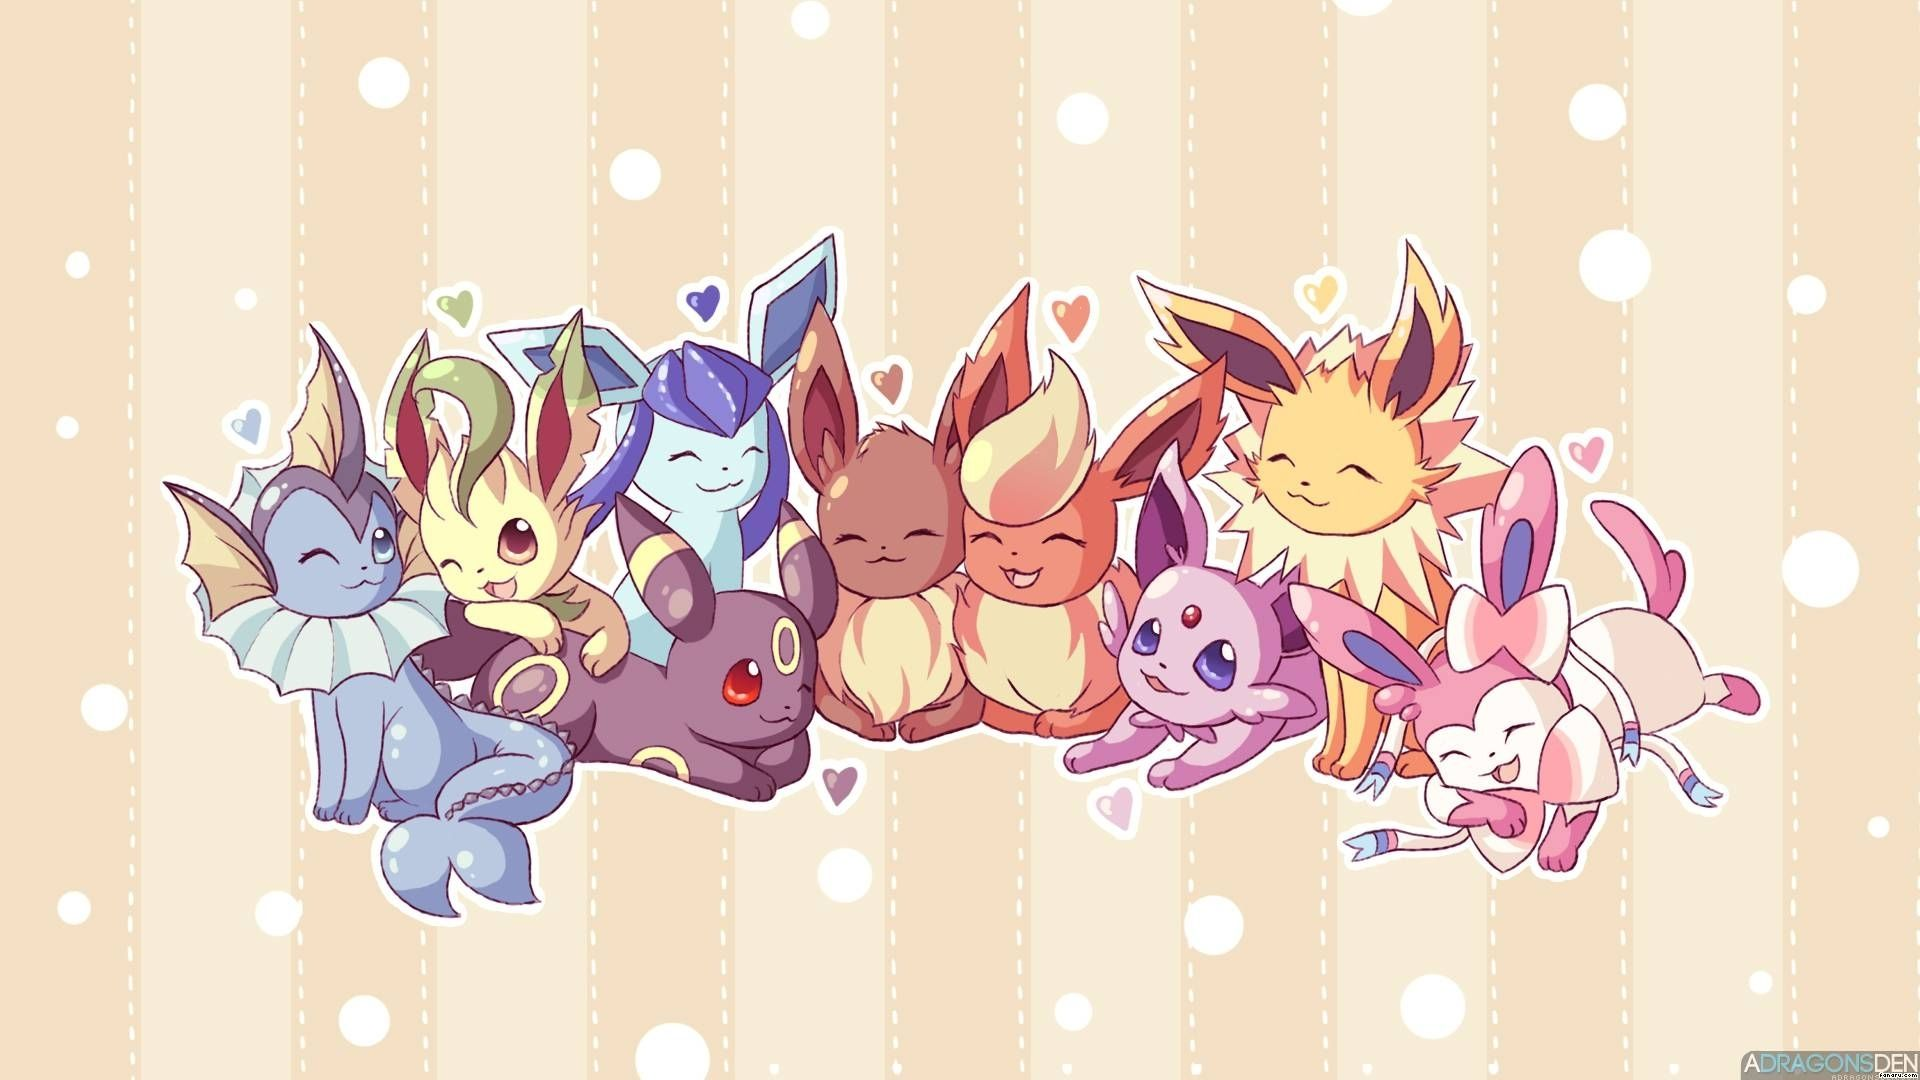 10 Top Pokemon Eevee Evolutions Wallpaper Full Hd 1920 1080 For Pc Background Eevee Wallpaper Cute Pokemon Wallpaper Cool Pokemon Wallpapers